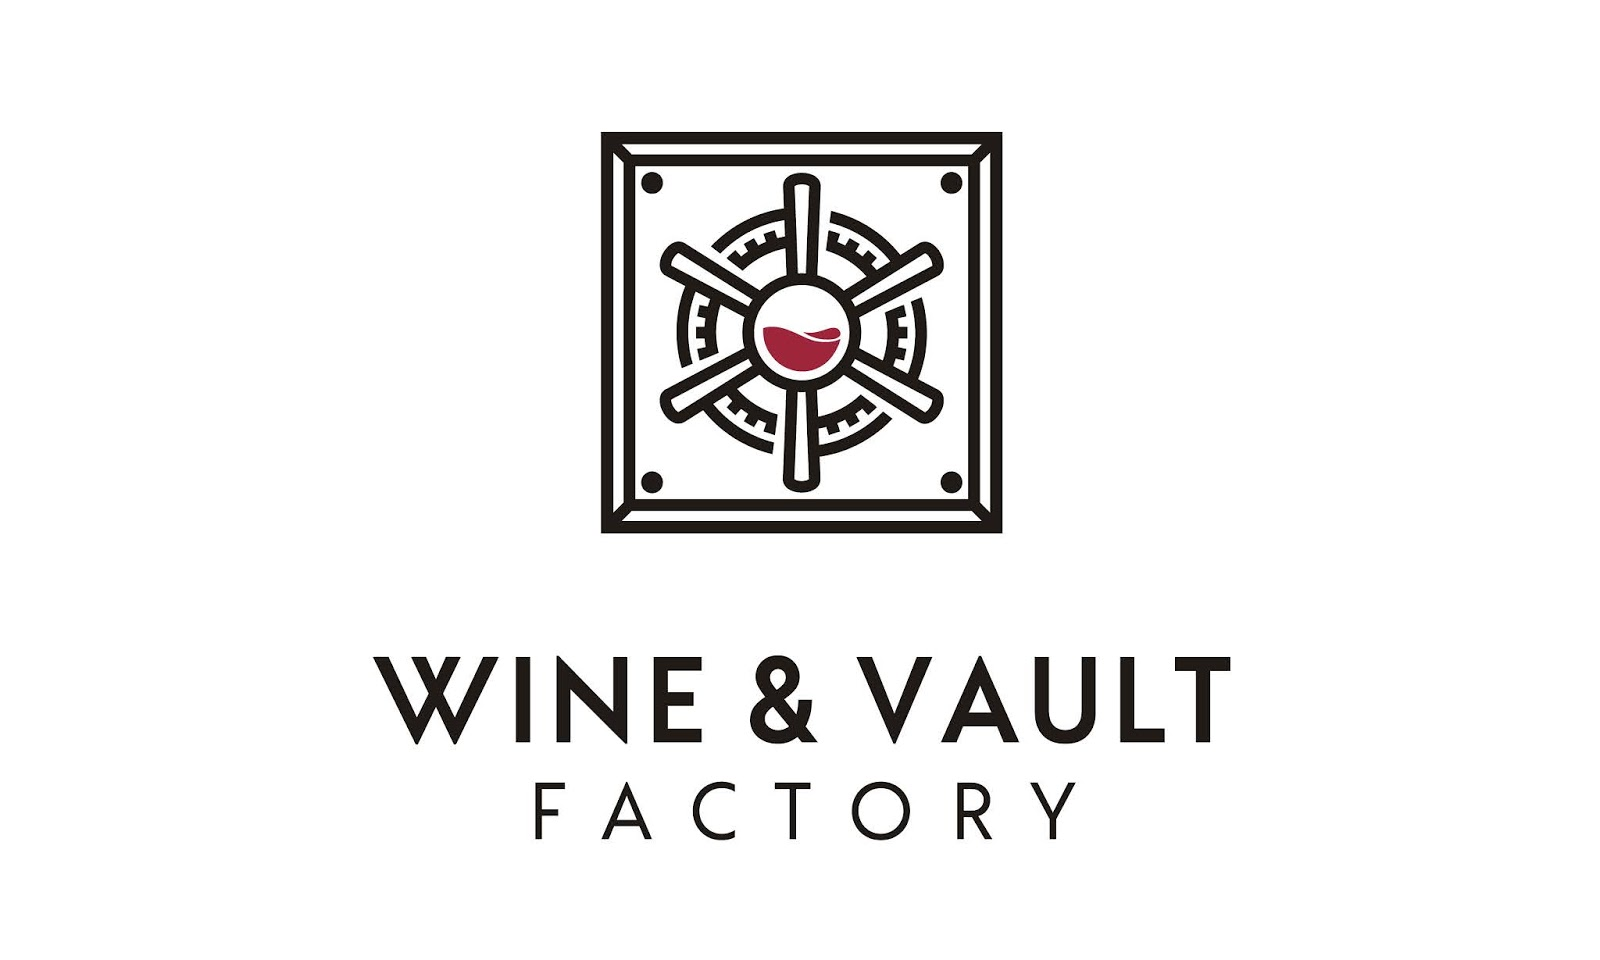 Wine Vault Factory Logo Design A Free Download Vector CDR, AI, EPS and PNG Formats